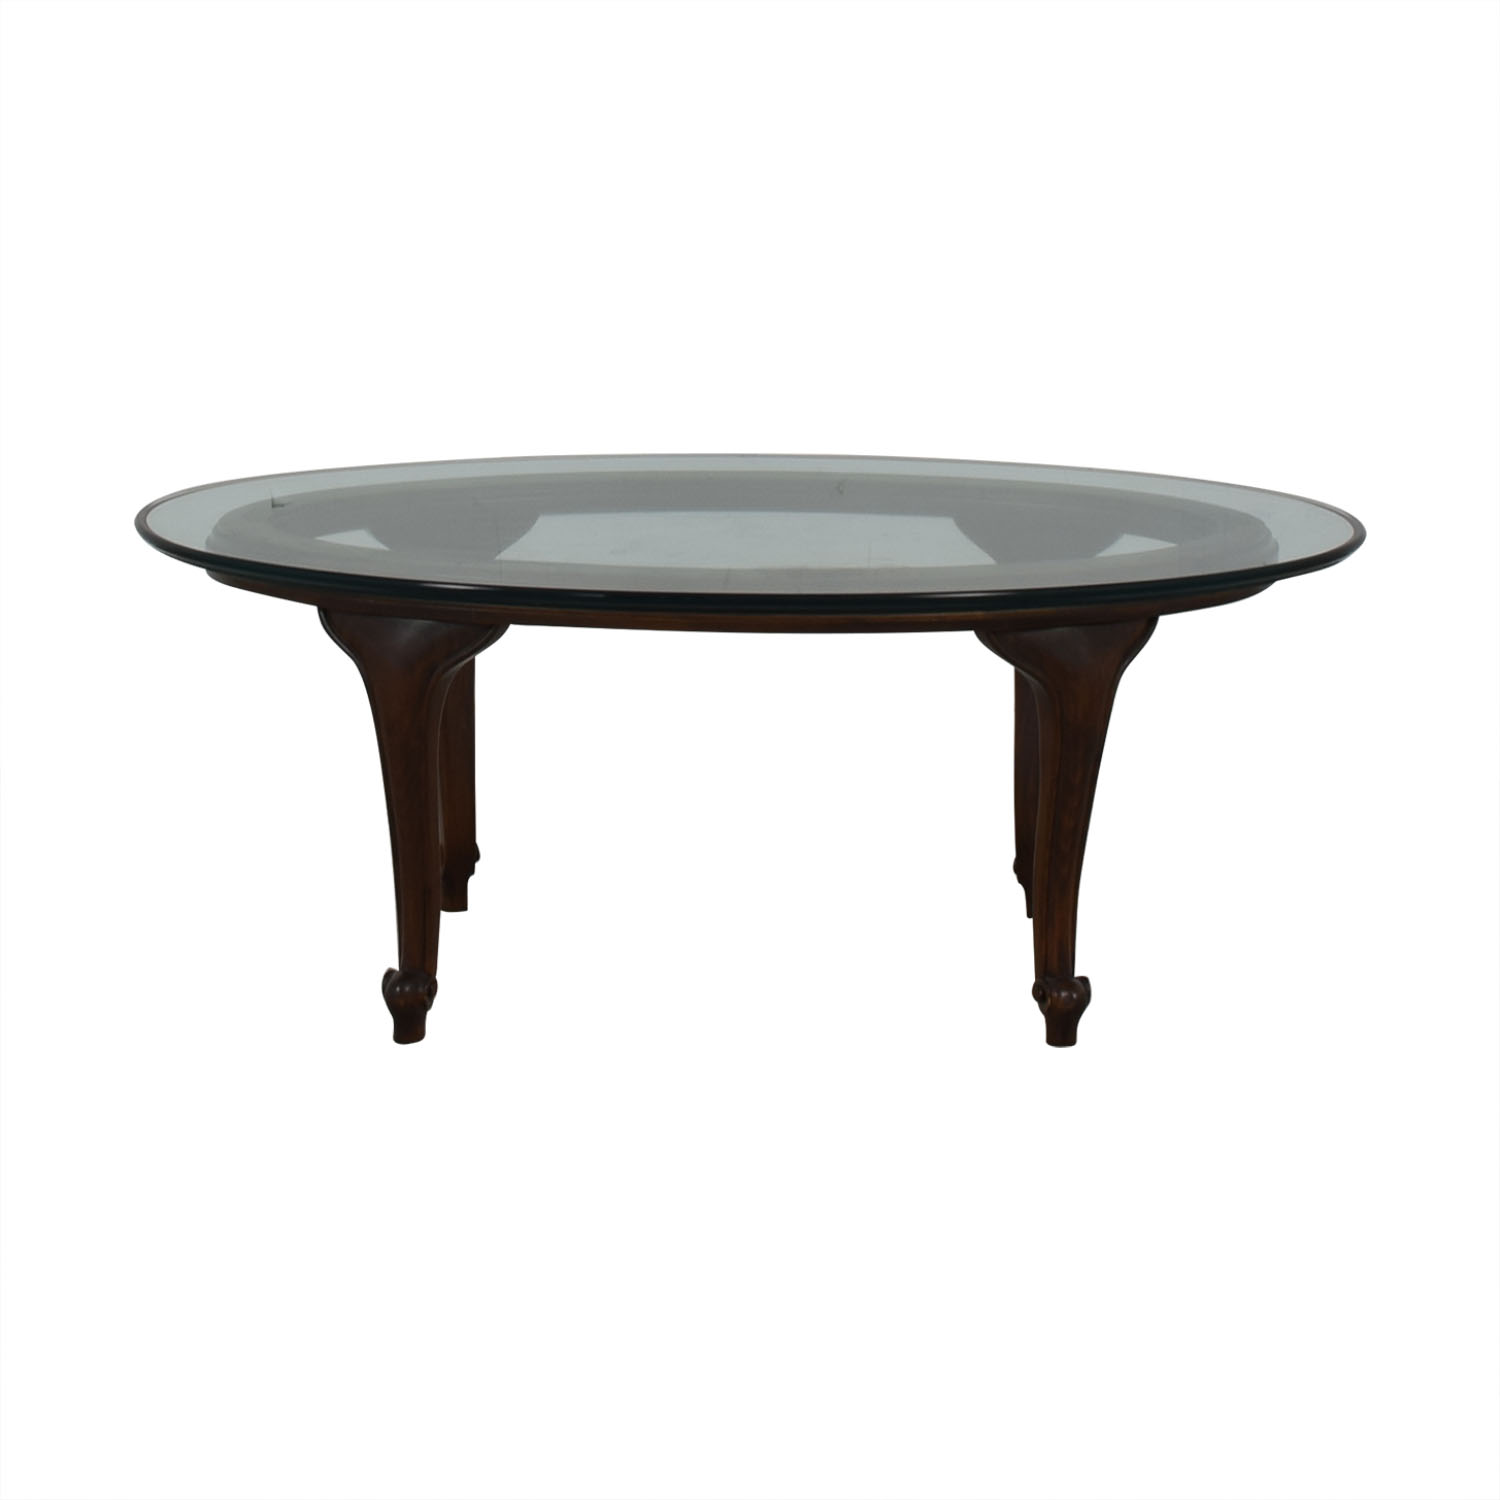 Macy's Macy's Oval Coffee Table on sale